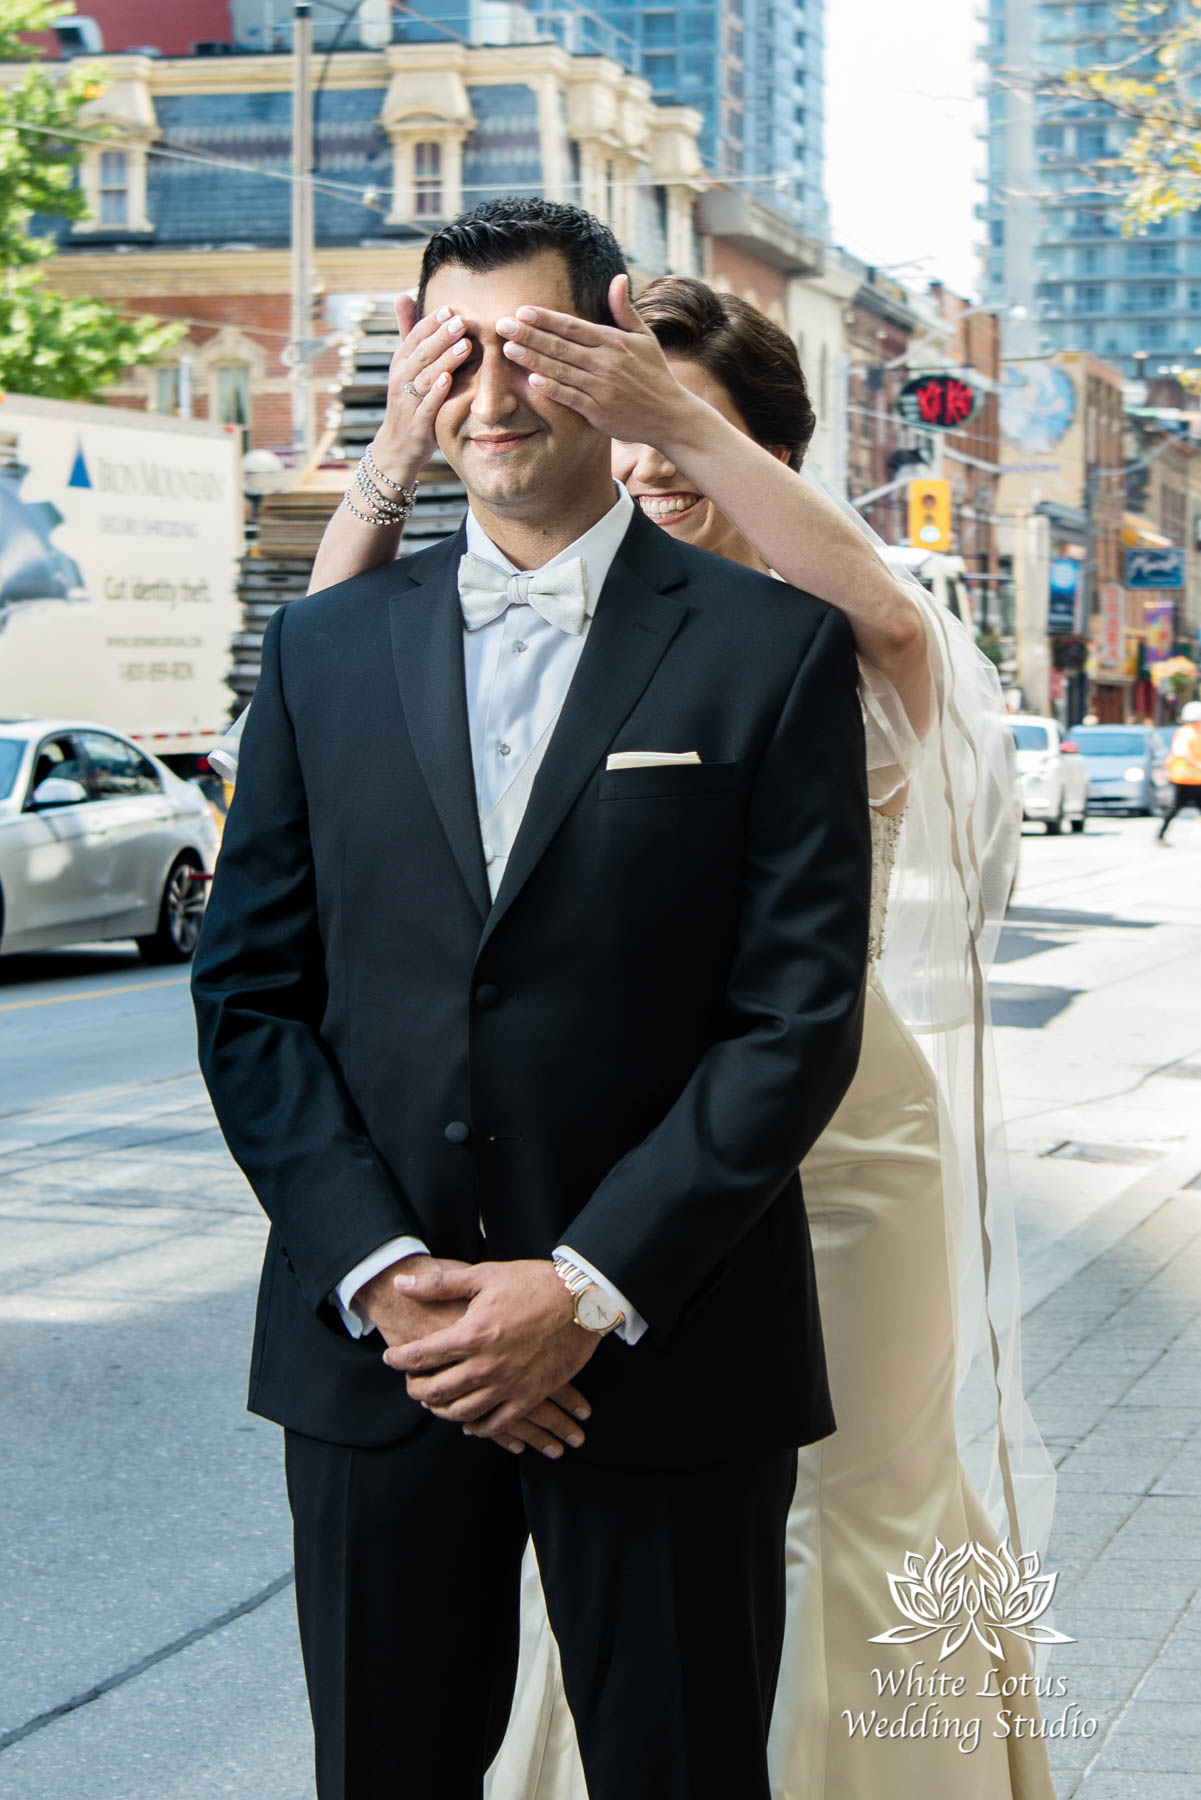 063 - Wedding - Toronto - First Look - Reveal - PW